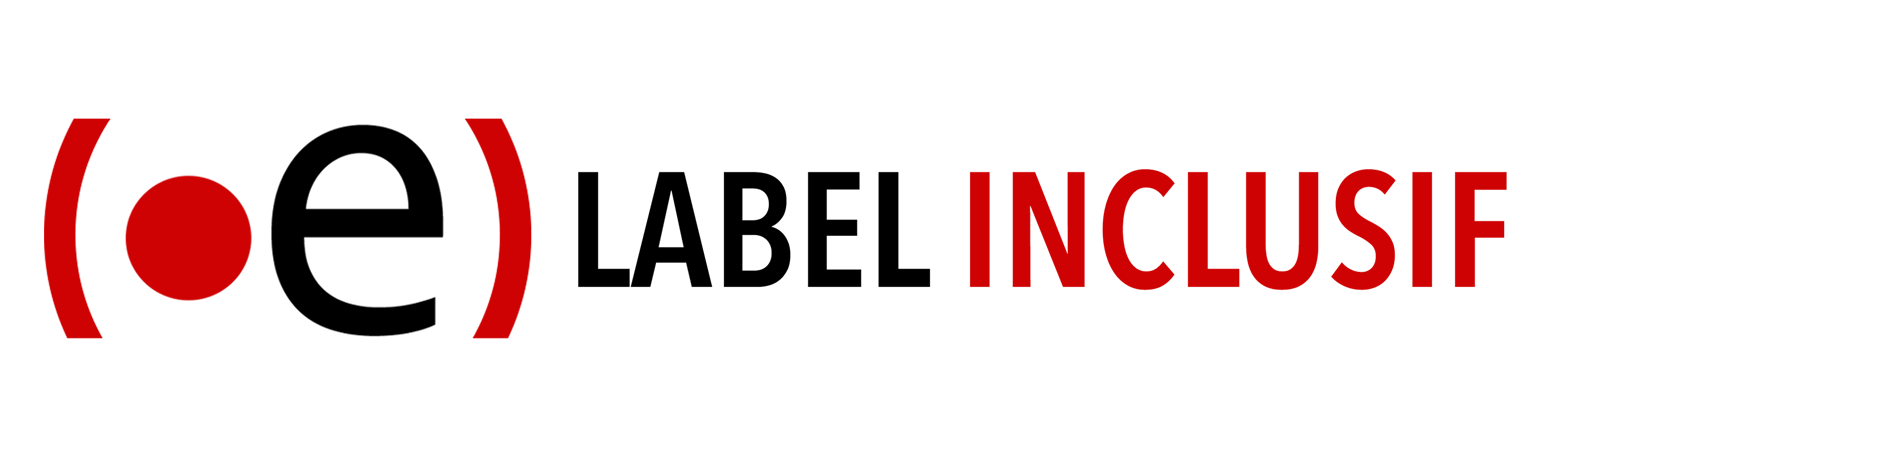 Label Inclusif